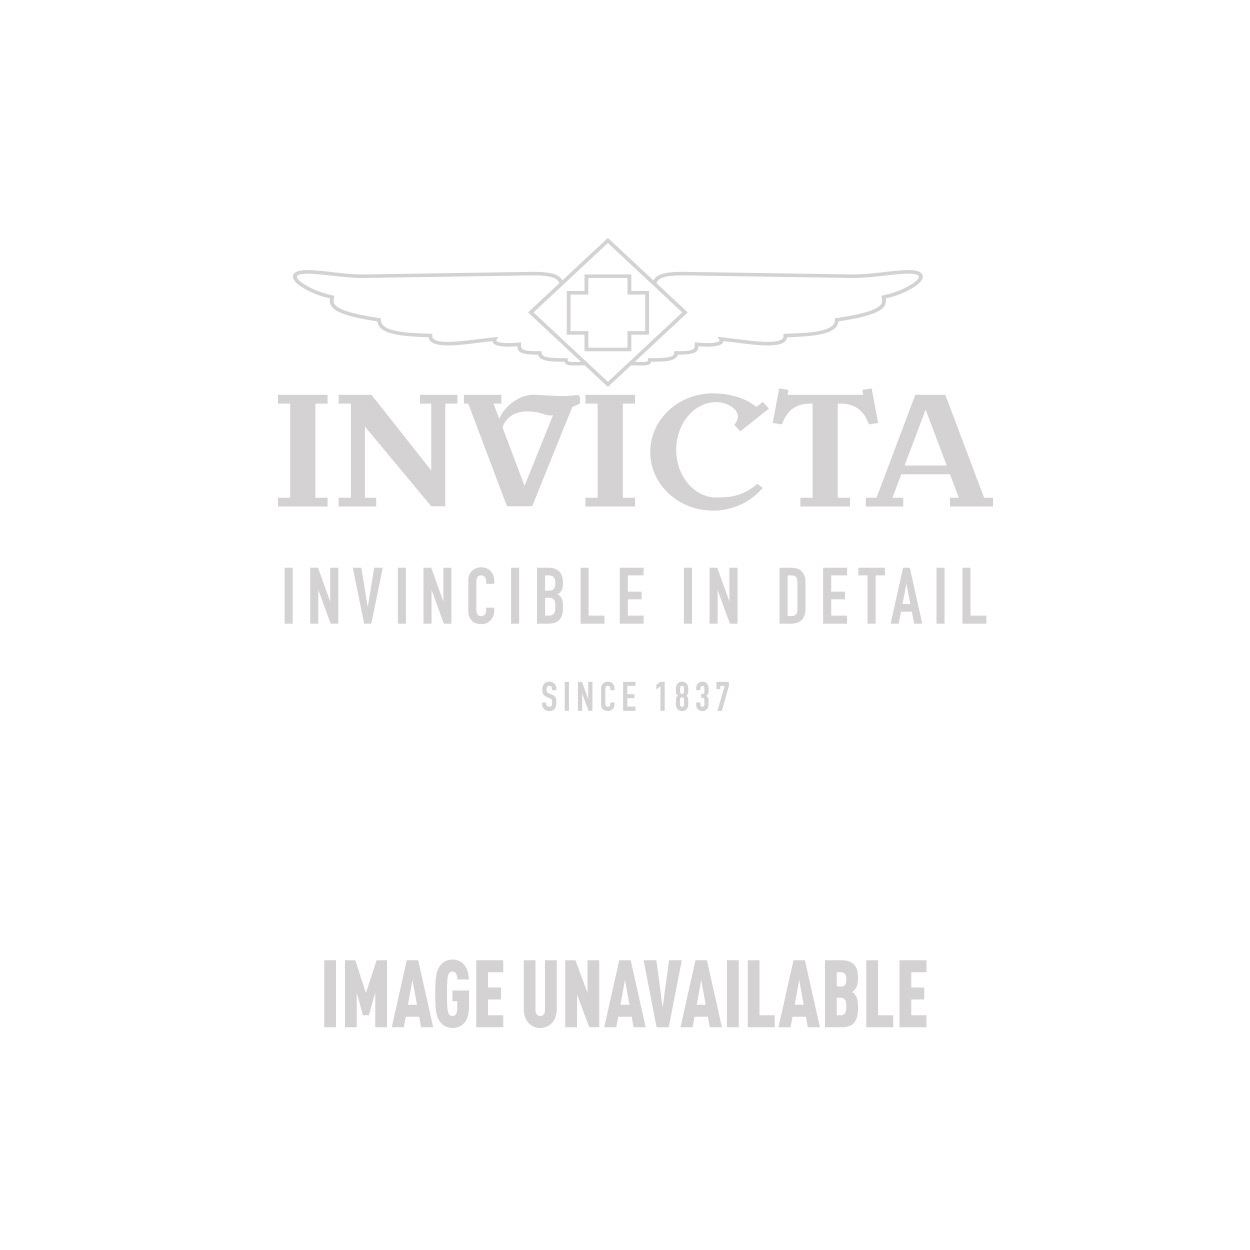 Invicta Coalition Forces Swiss Made Quartz Watch - Orange, Stainless Steel case with Blue tone Silicone band - Model 18728